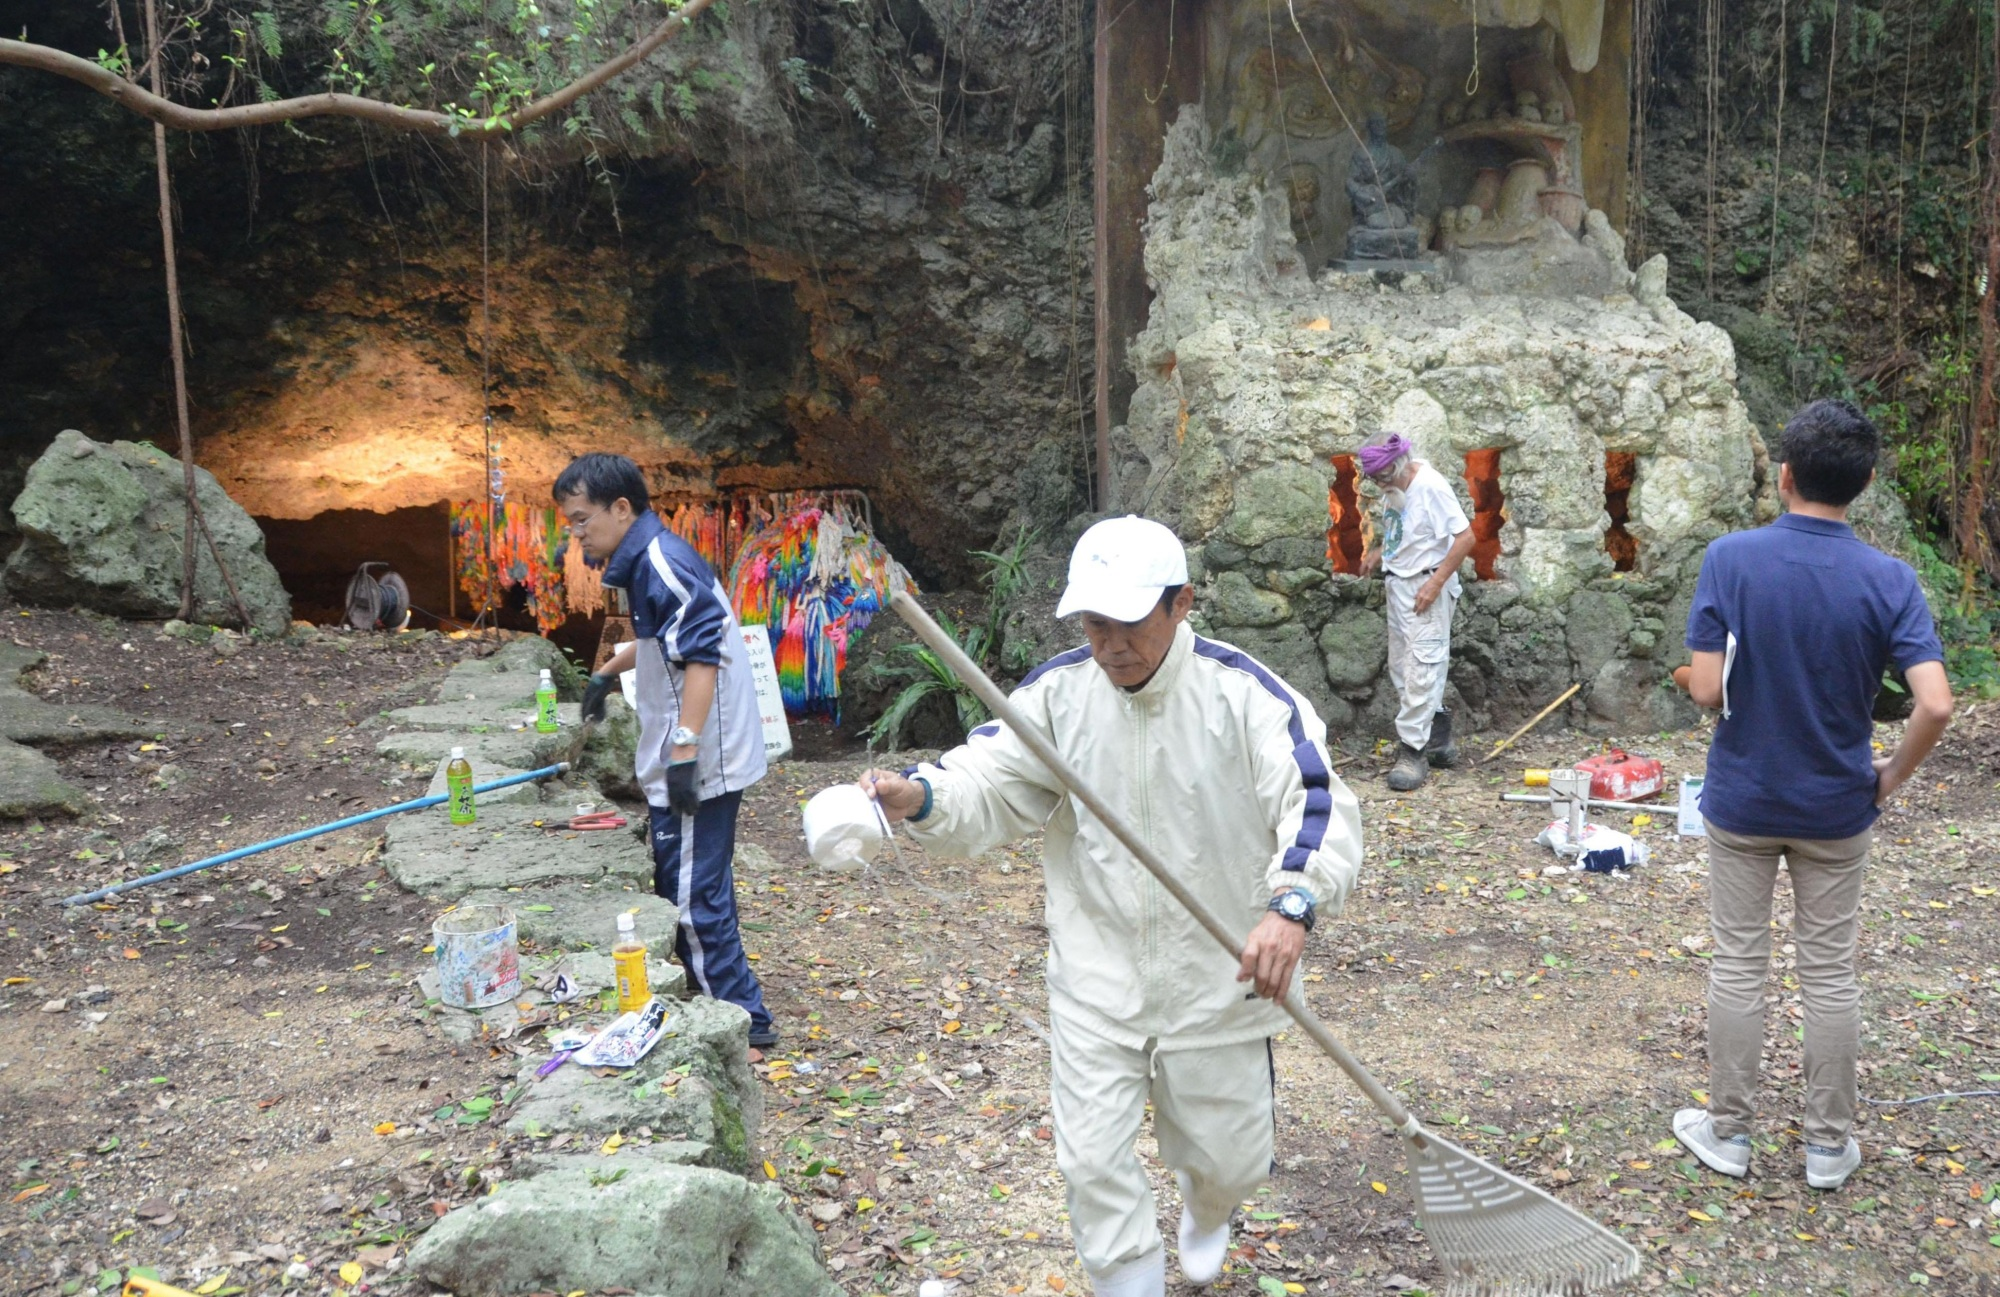 Relatives of Okinawans forced to commit mass suicide in the closing days of World War II clean the Chibichirigama cave, where the suicides took place and where acts of vandalism were discovered earlier this week, in the village of Yomitan on Saturday. | KYODO